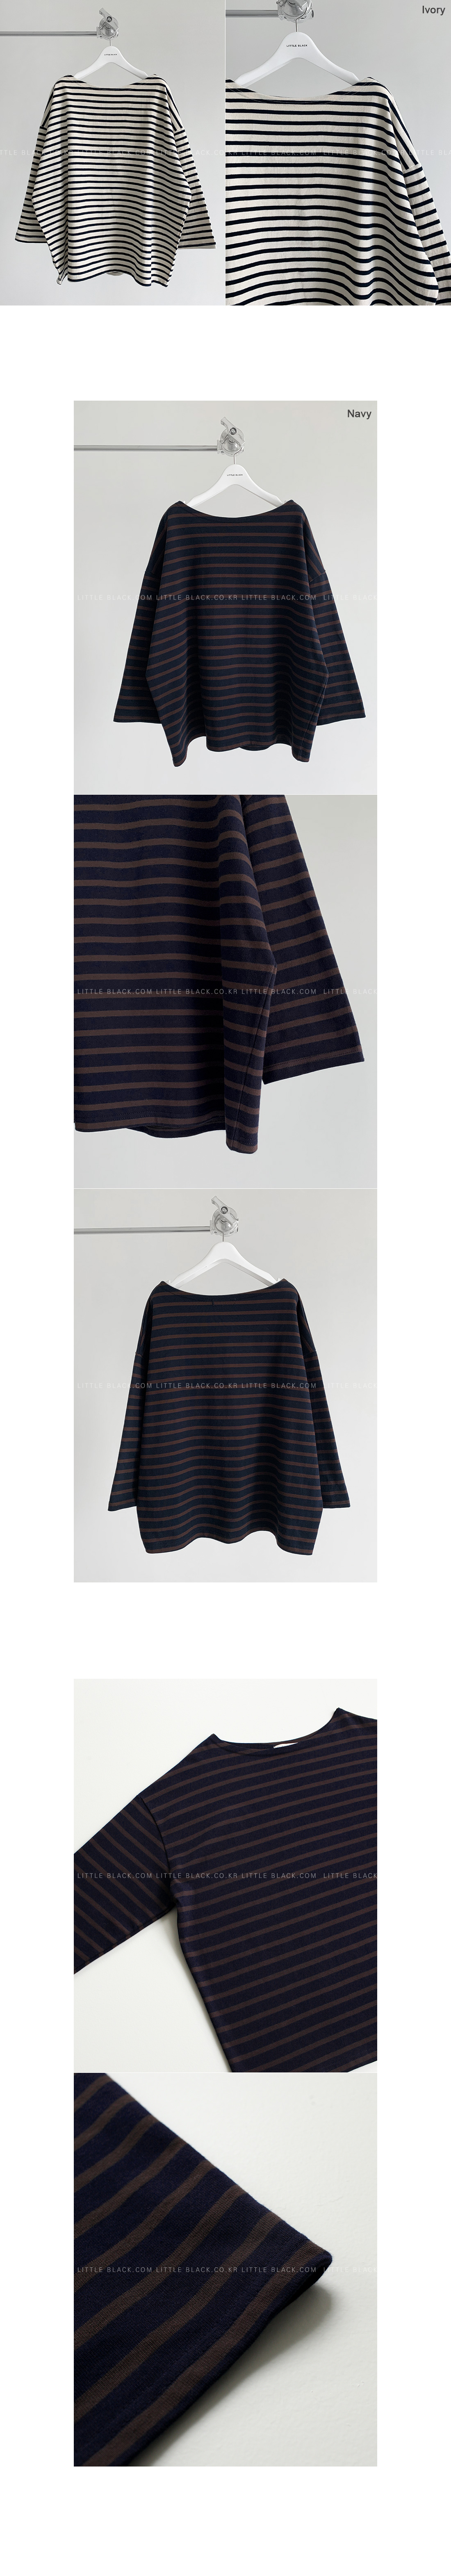 Relaxed Fit Striped Top|